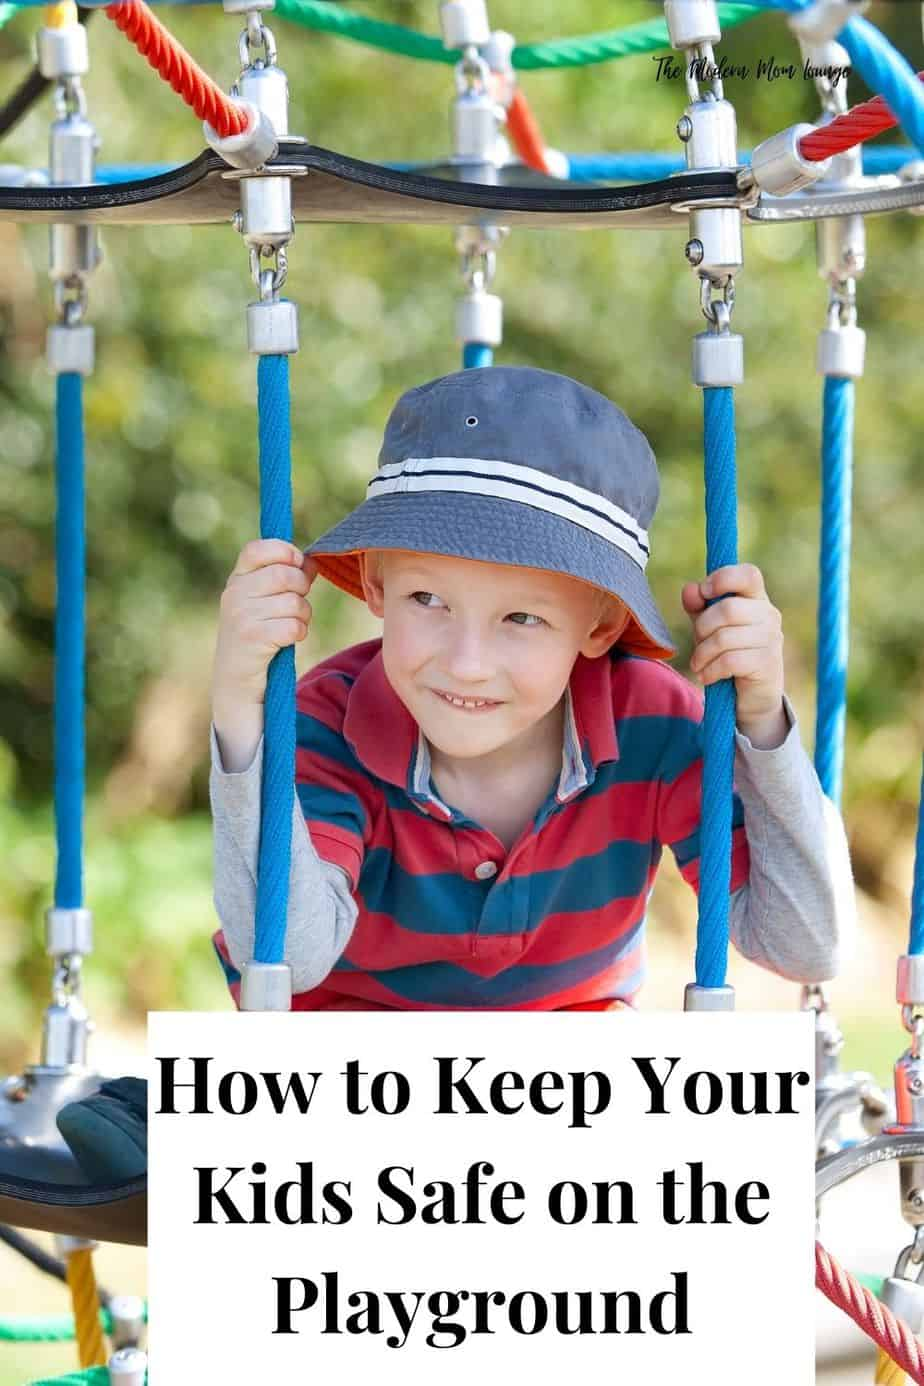 How to Keep Your Kids Safe on the Playground